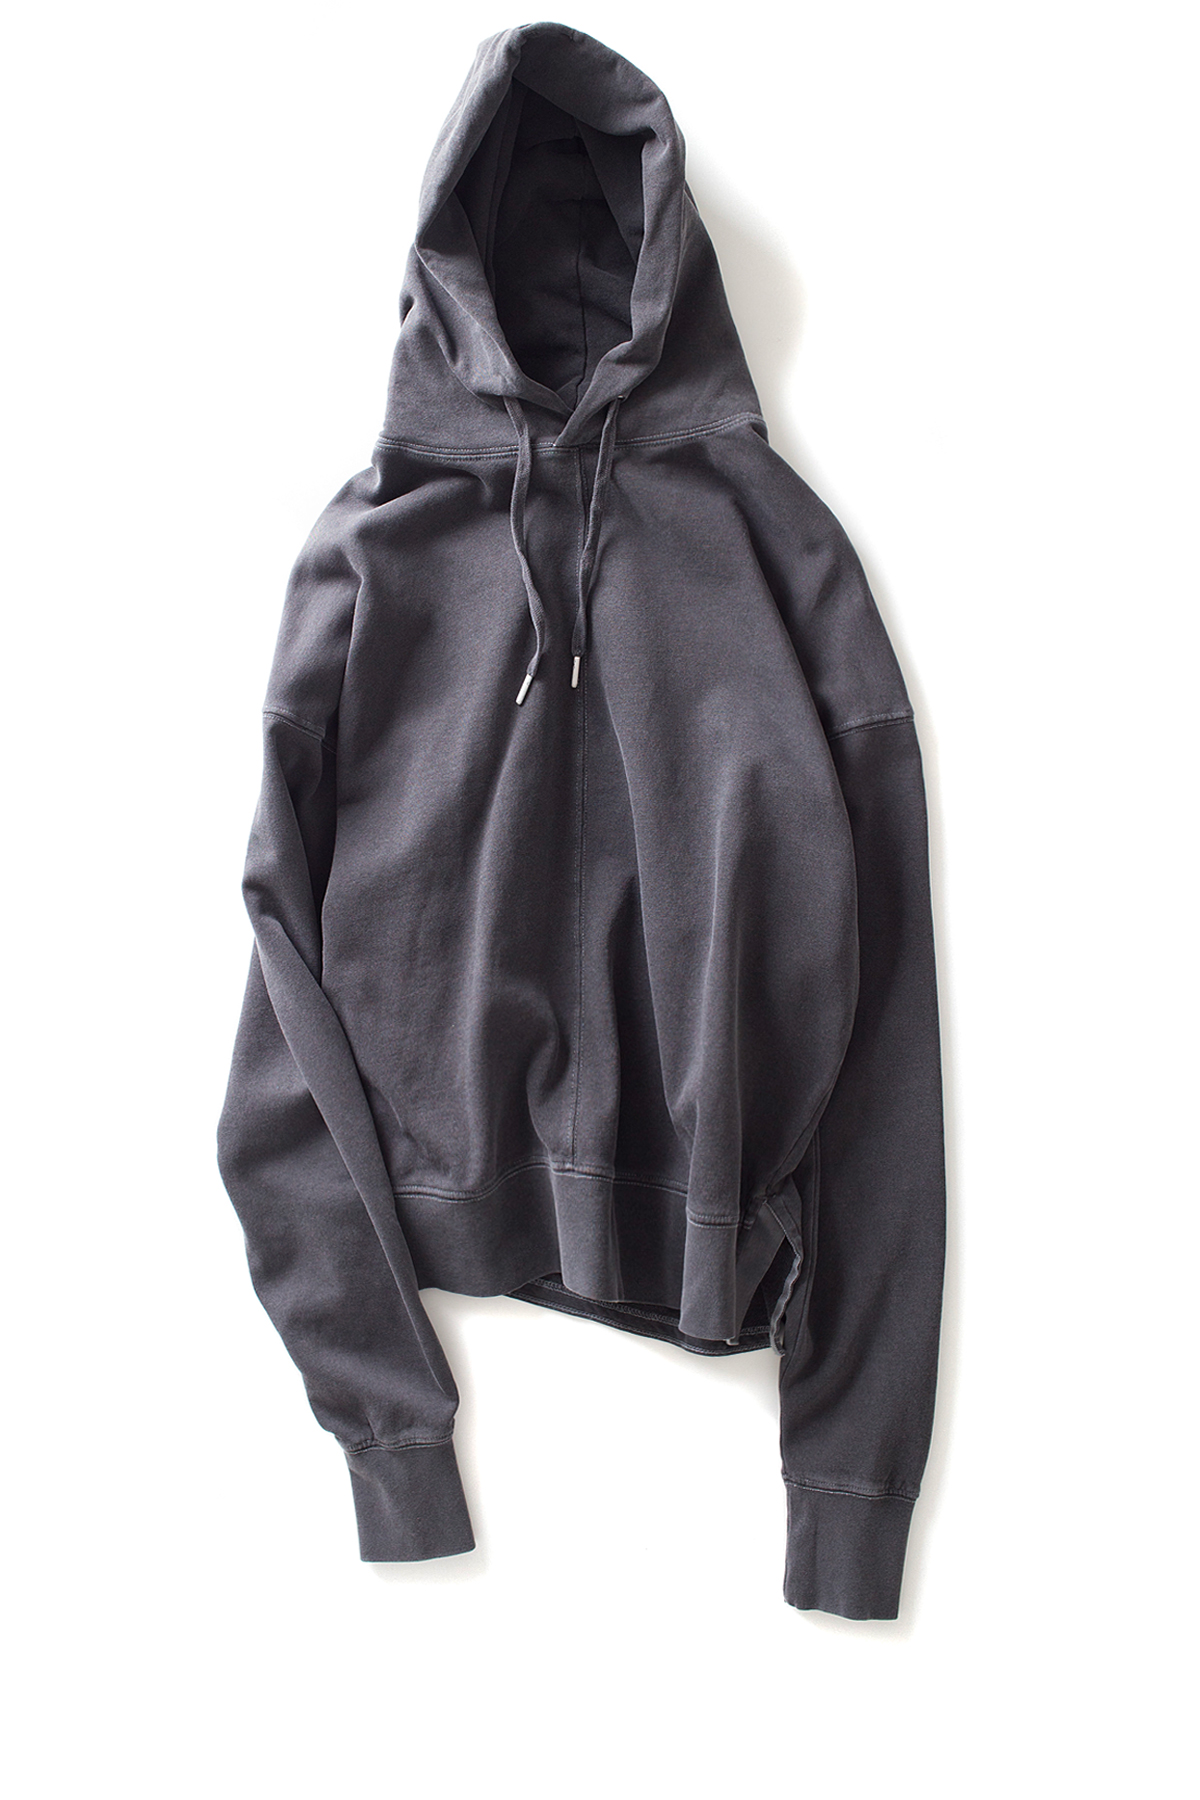 AECA WHITE : Oversize Batwing Hoodie (Charcoal)